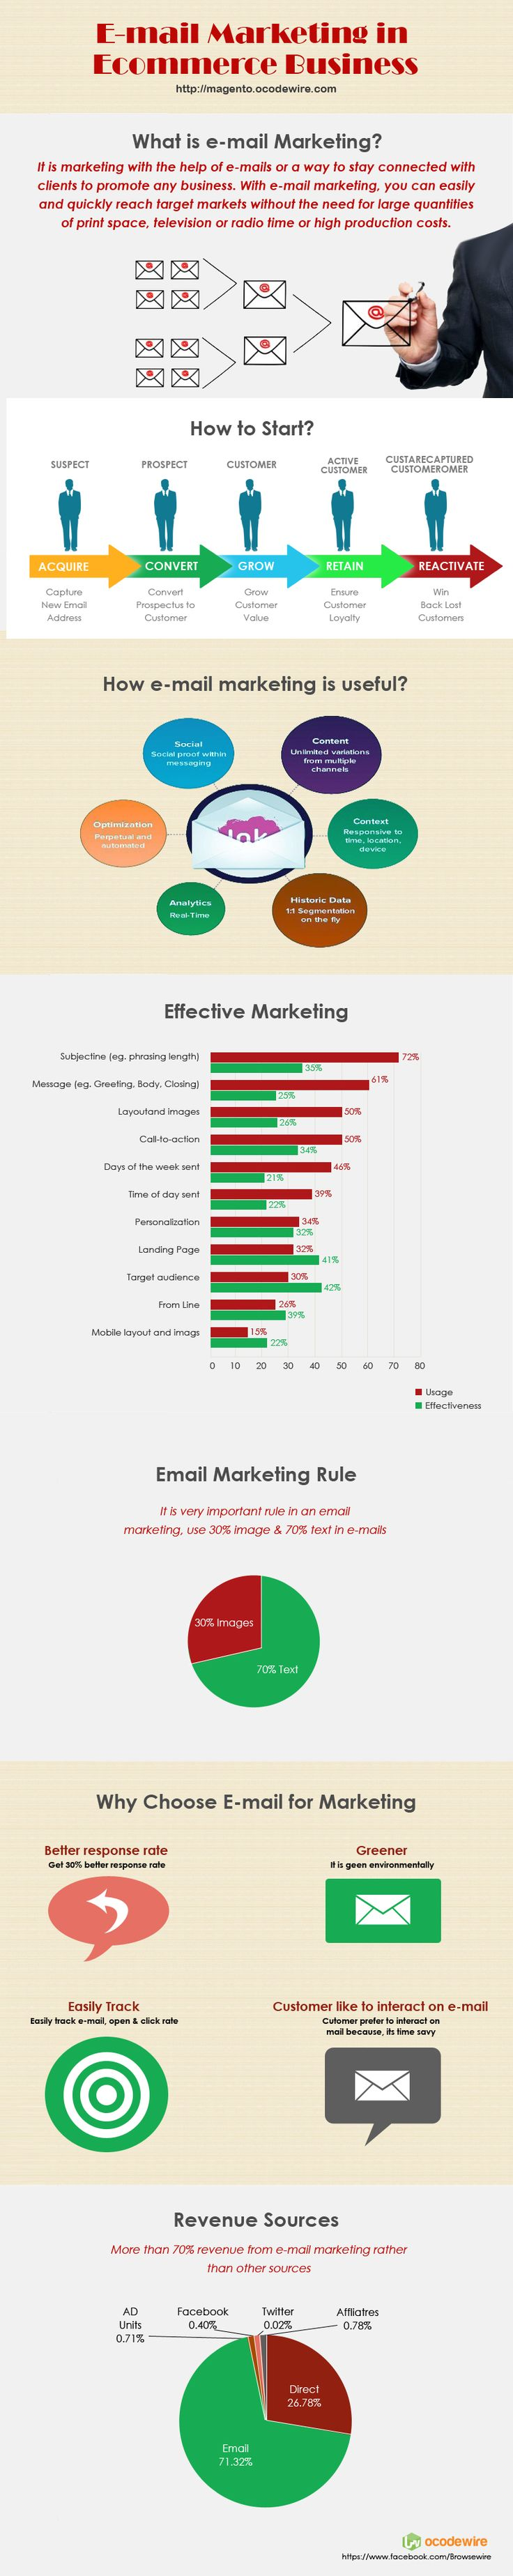 #email #marketing #infographics The essence of #emailmarketing, Connecting with Clientele Via Mobilemarketingwatch